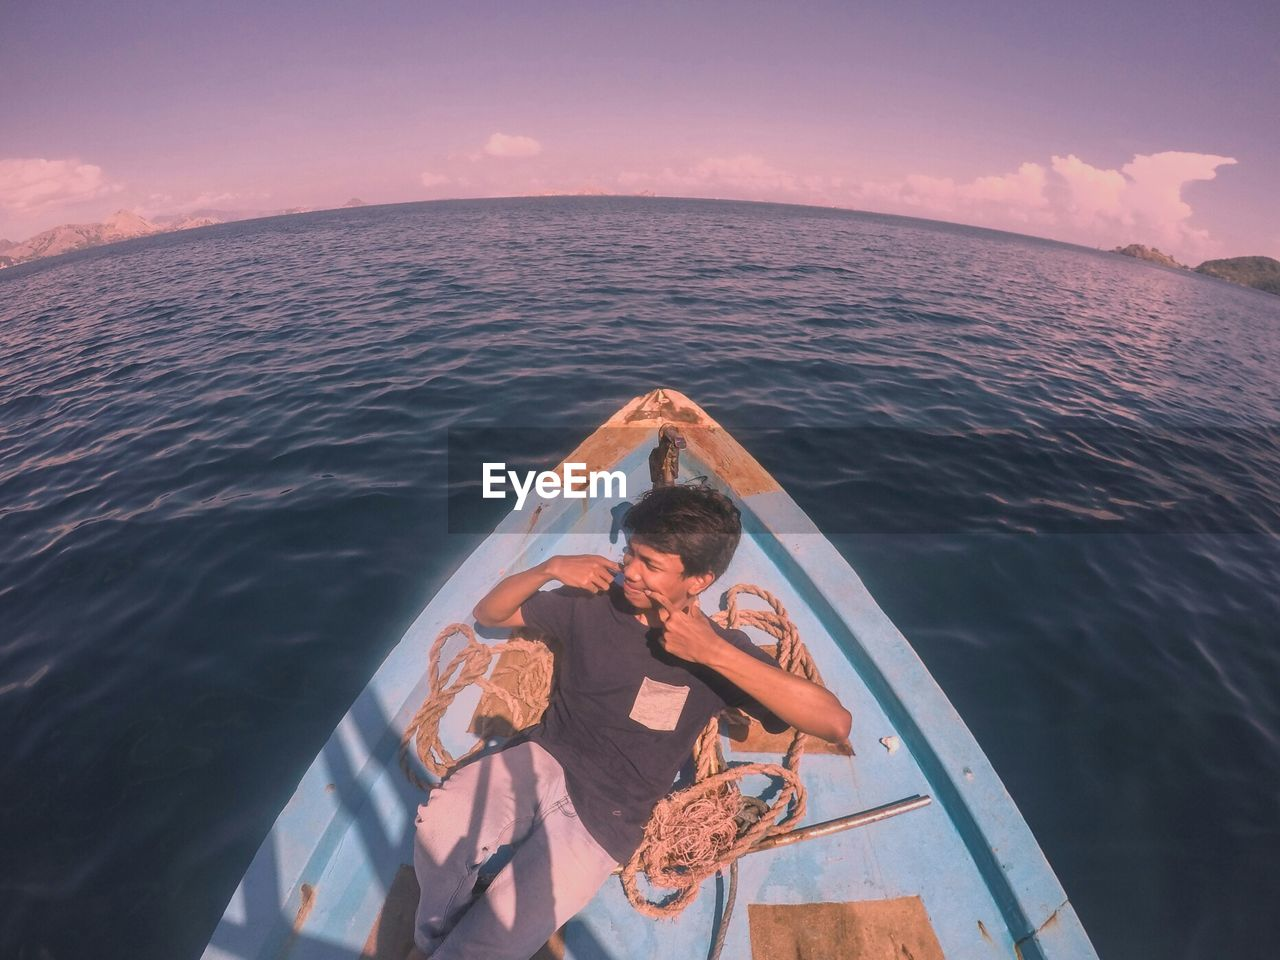 High angle view of young man looking away while sitting in boat on sea against sky during sunset